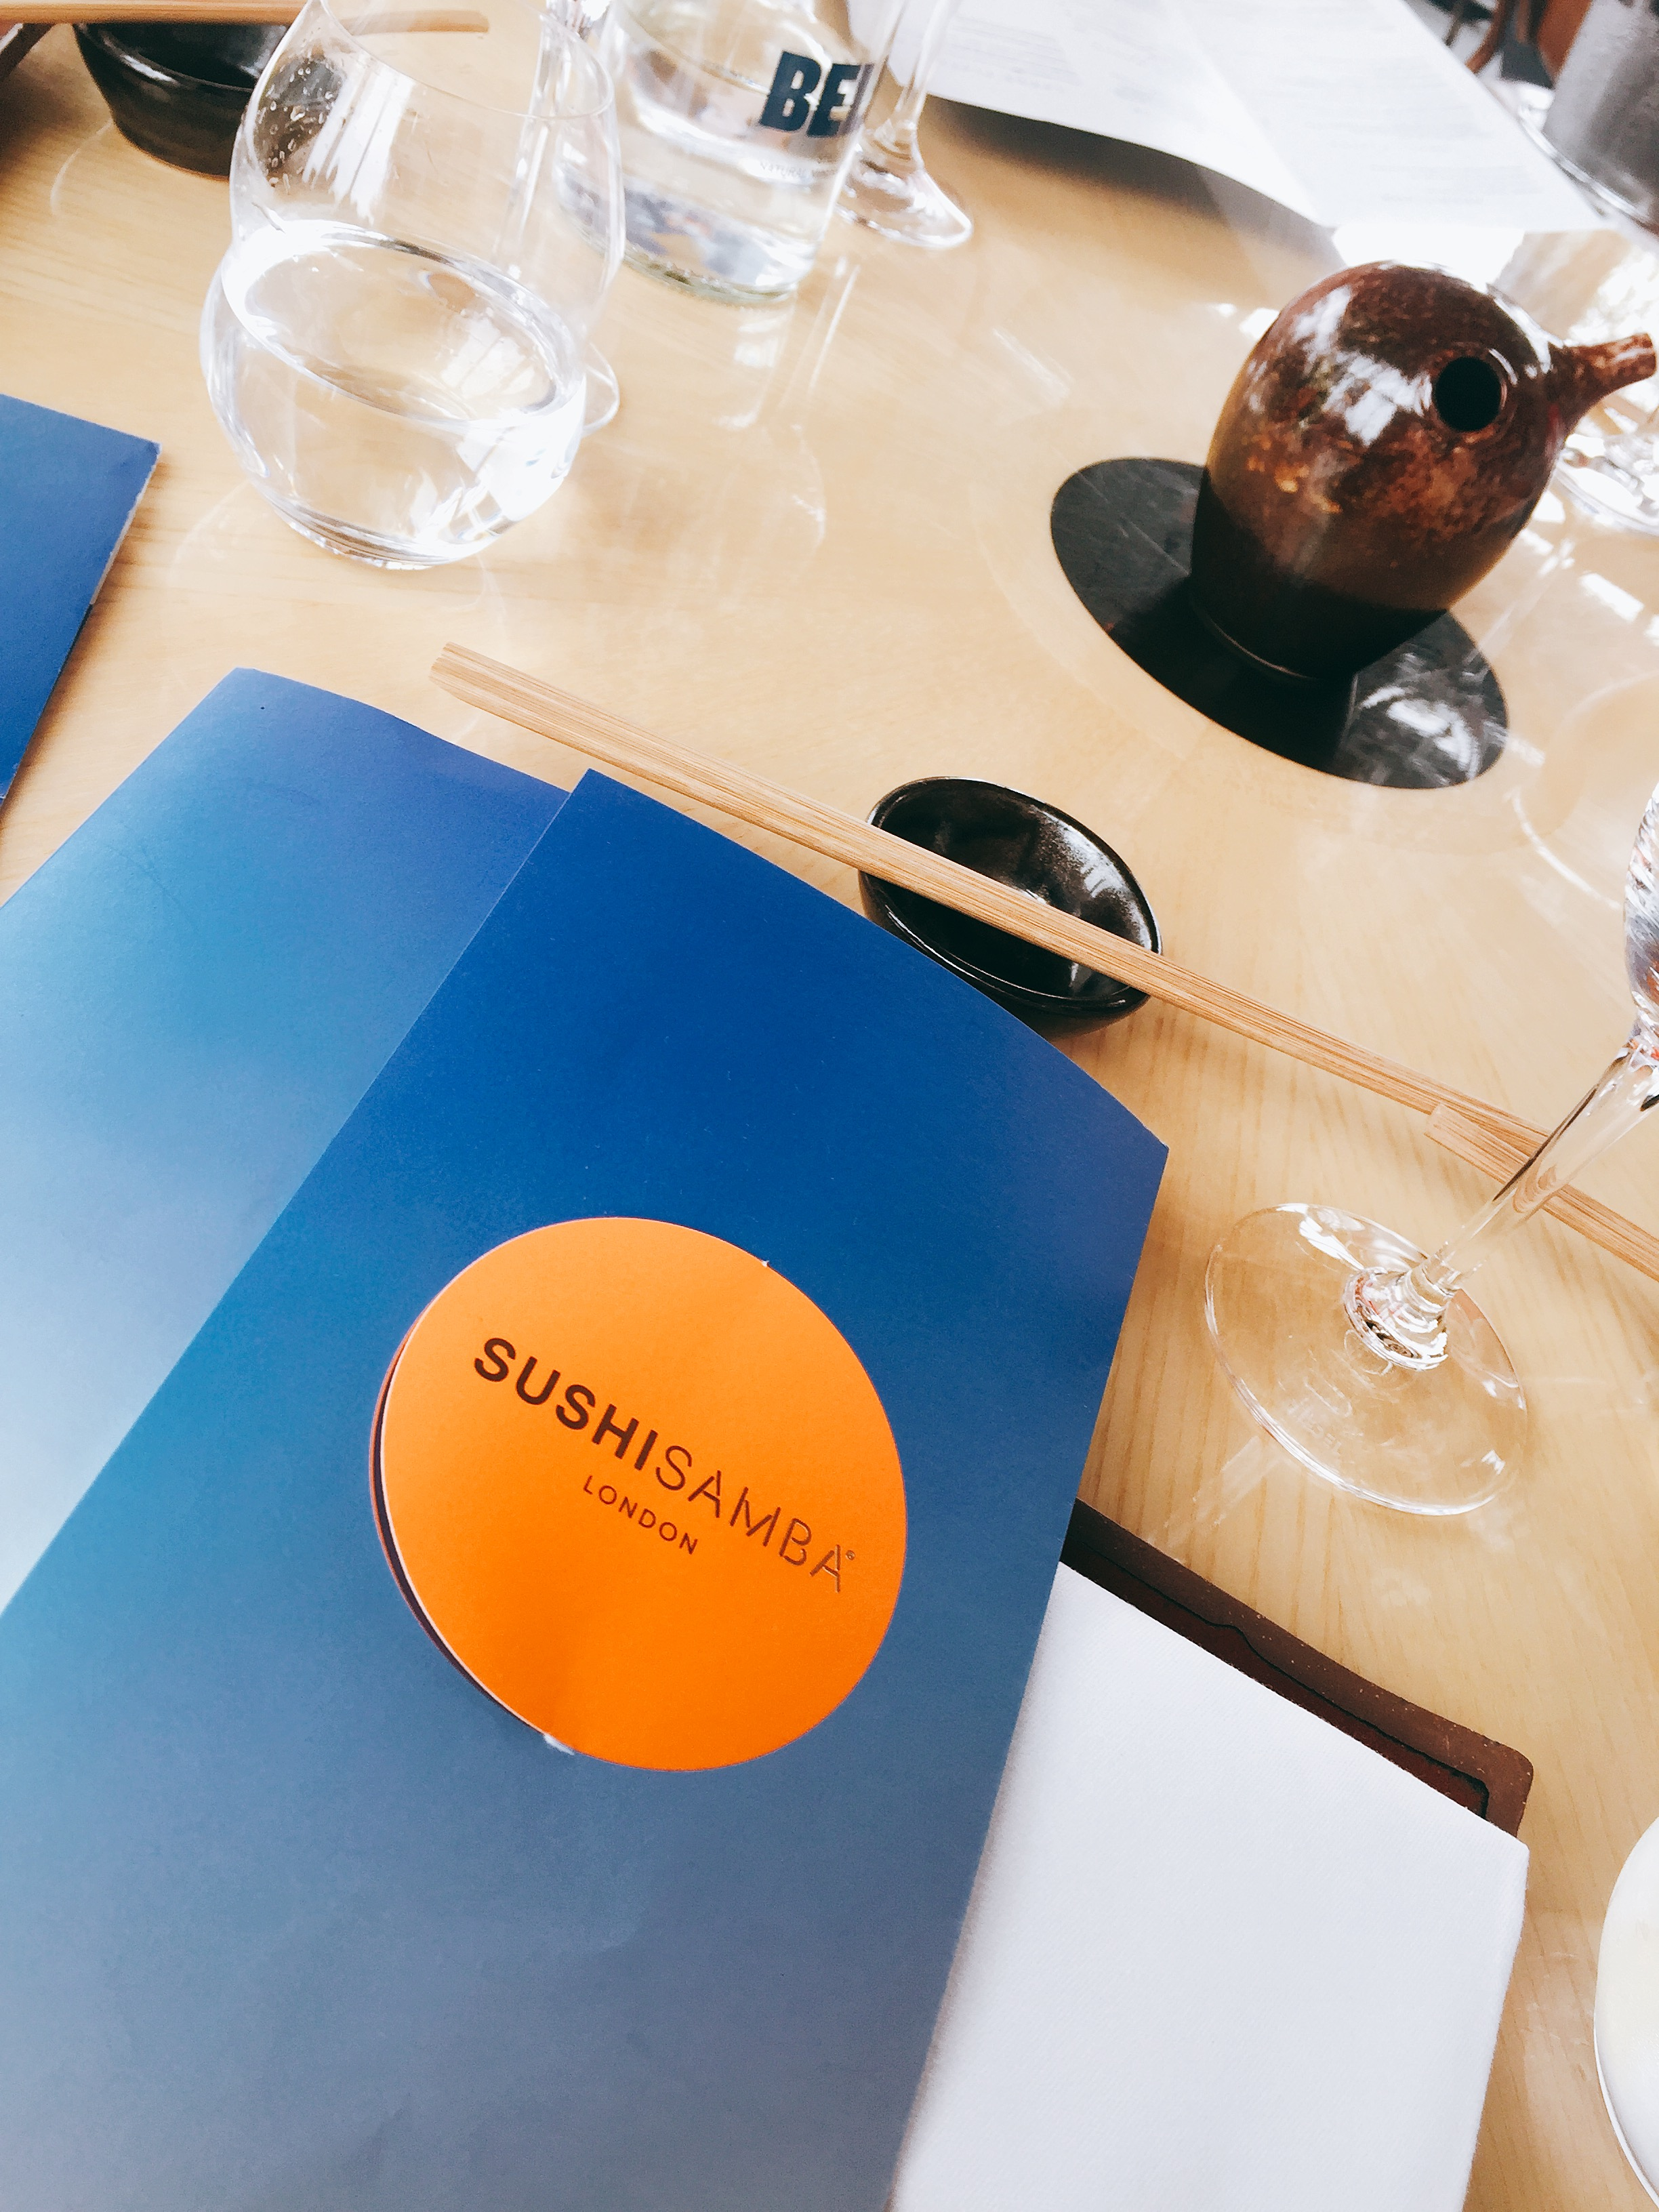 Menu at Sushisamba London